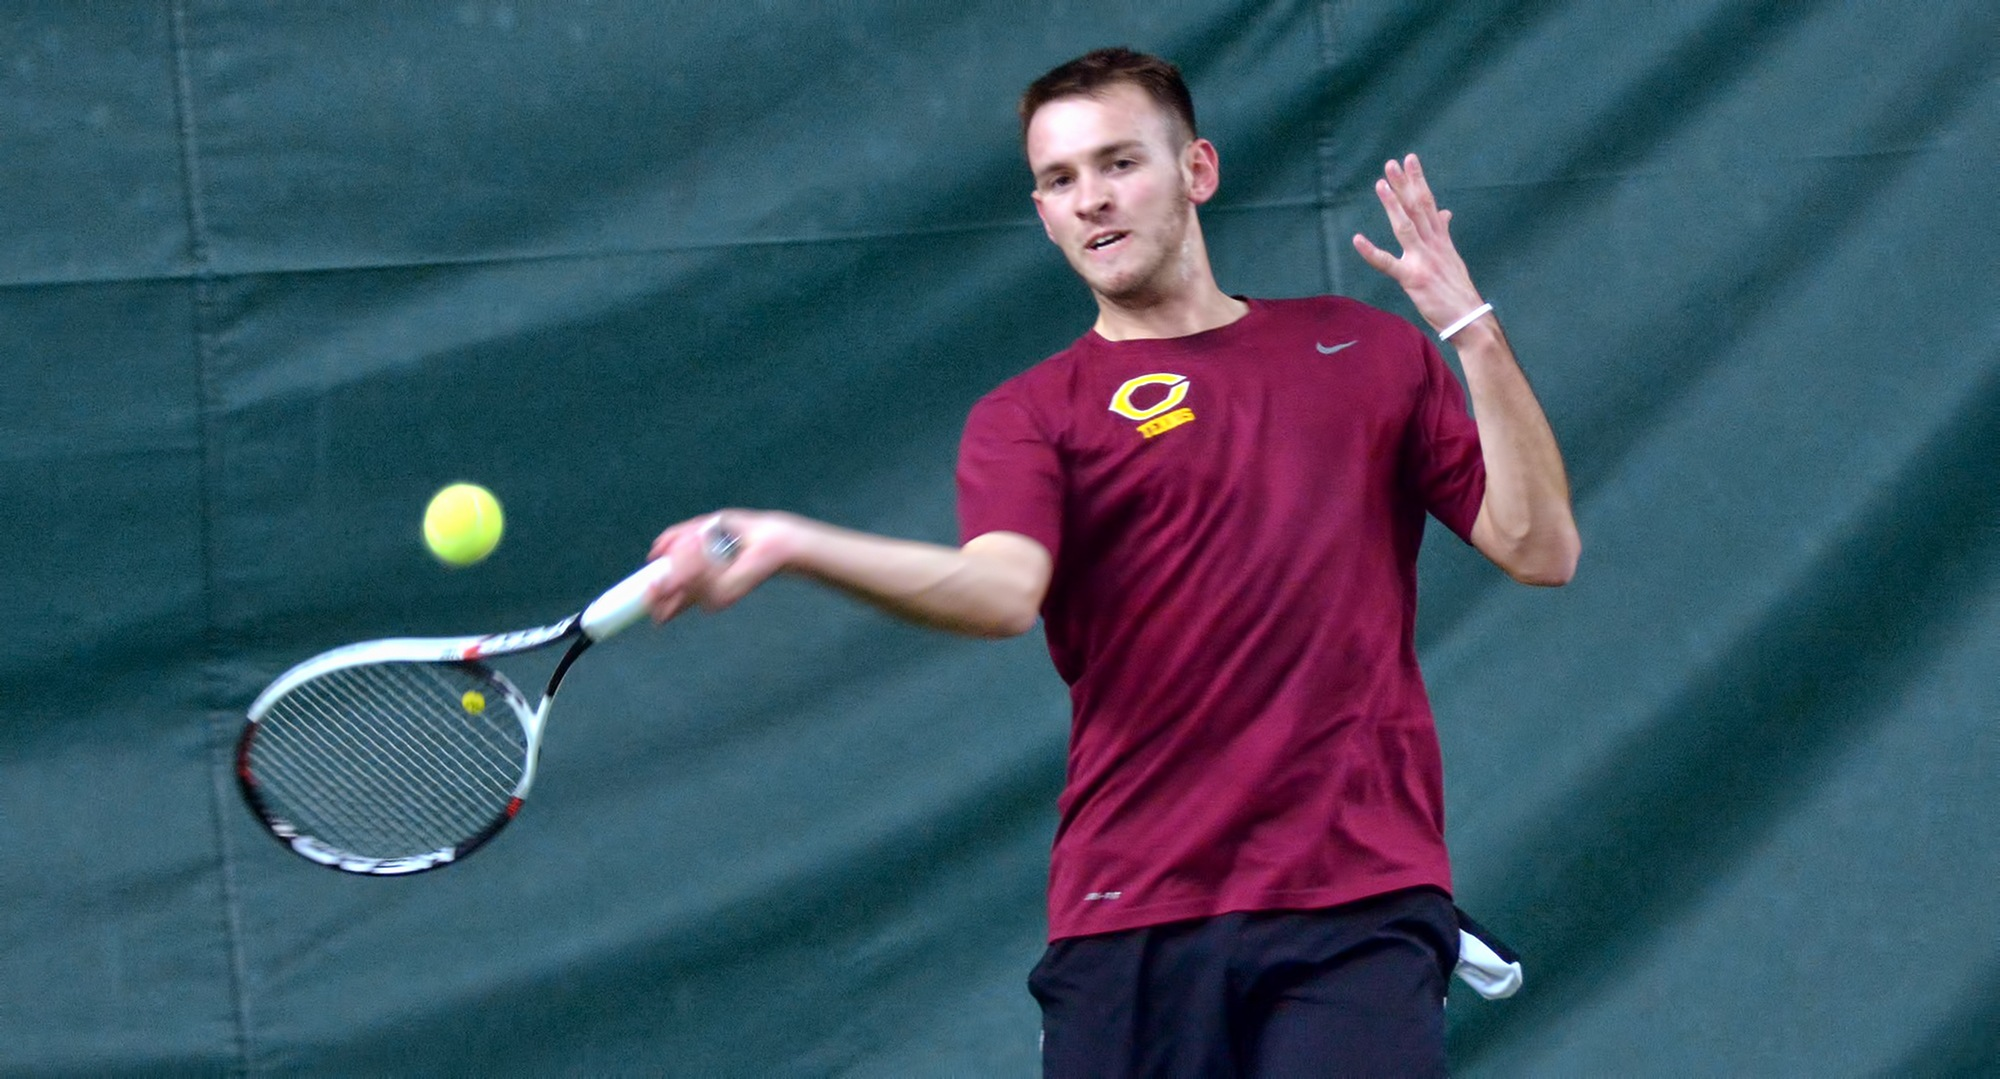 Senior David Youngs earned his team-leading fifth singles win of the year in the Cobbers' match at St. John's.